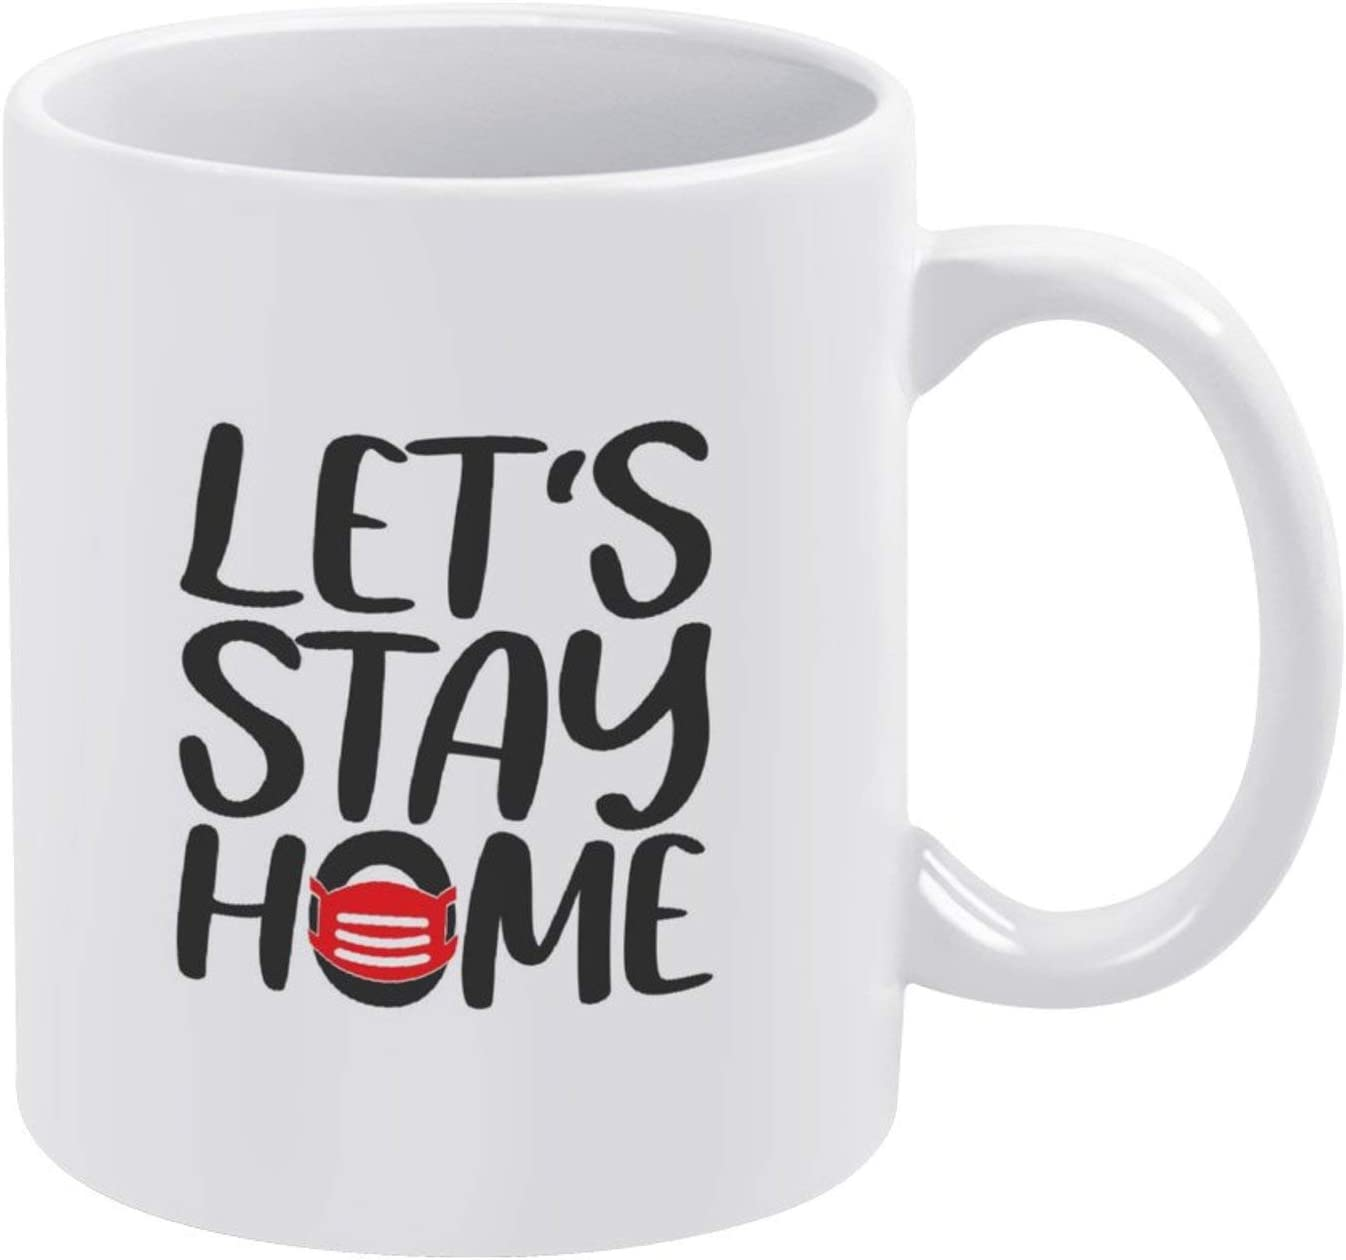 Let's Stay Home Coffee Mug Cup, 11oz Ceramic Mug Tea Beverage Mug for Home & Office,Birthday,Anniversary,Halloween,Christmas,Valentine's Day Present Idea.